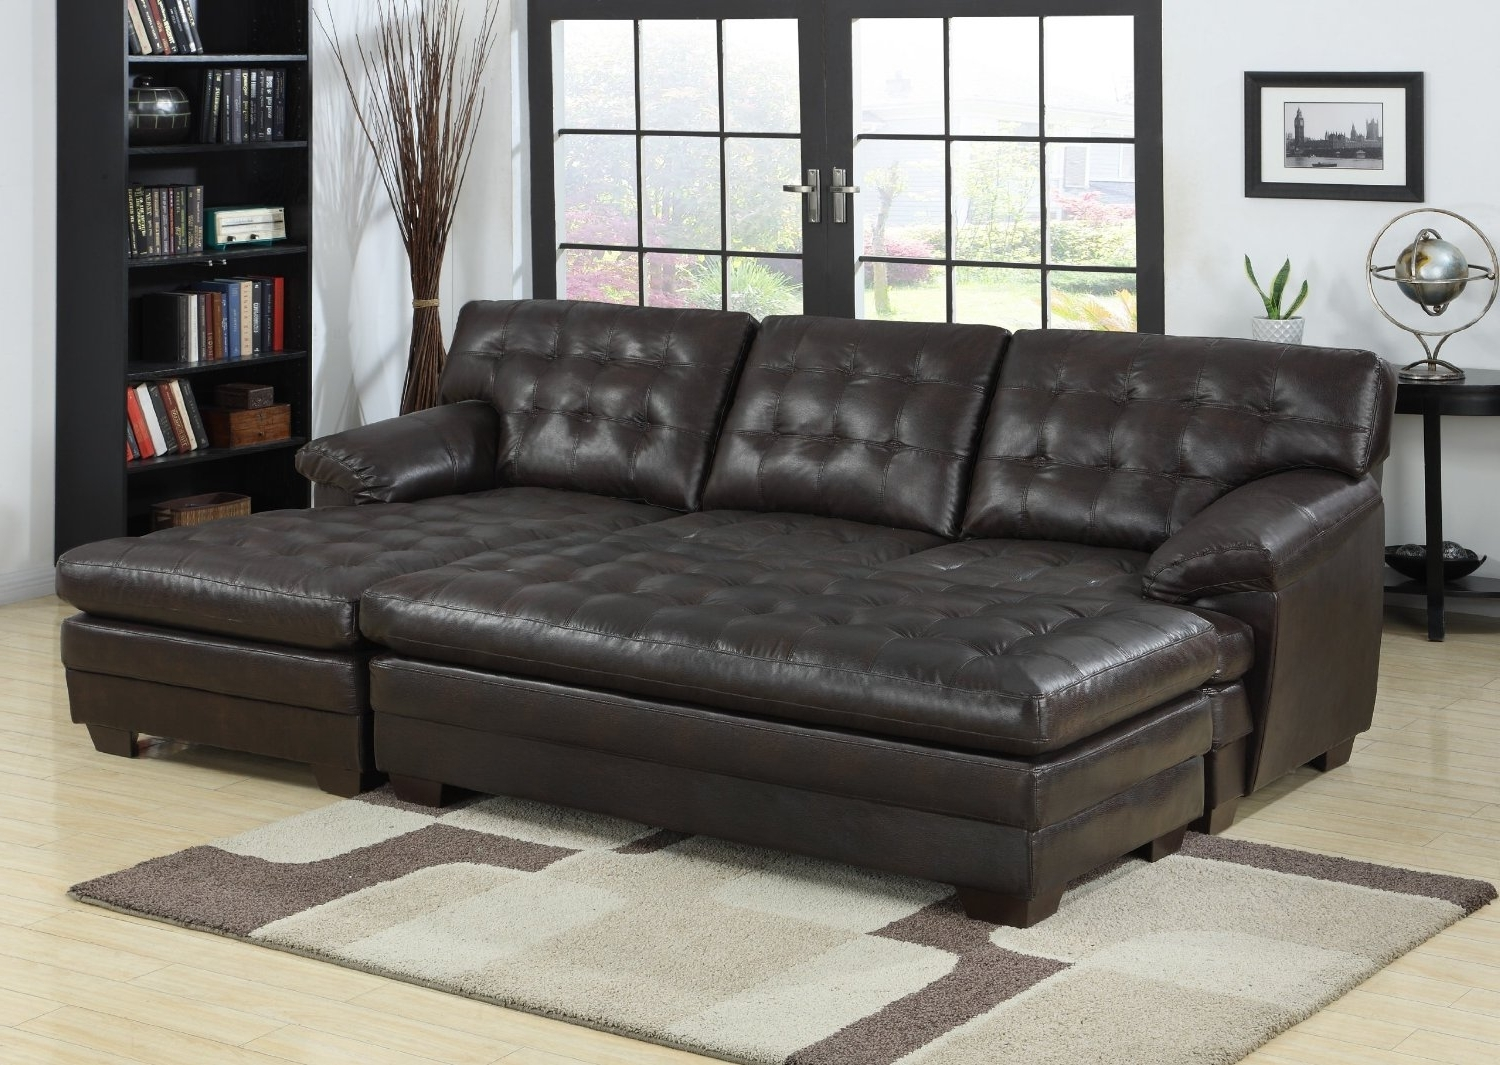 Most Recent Double Chaise Lounge Sofa Image Gallery — The Home Redesign : The In Leather Chaise Lounge Sofa Beds (View 12 of 15)